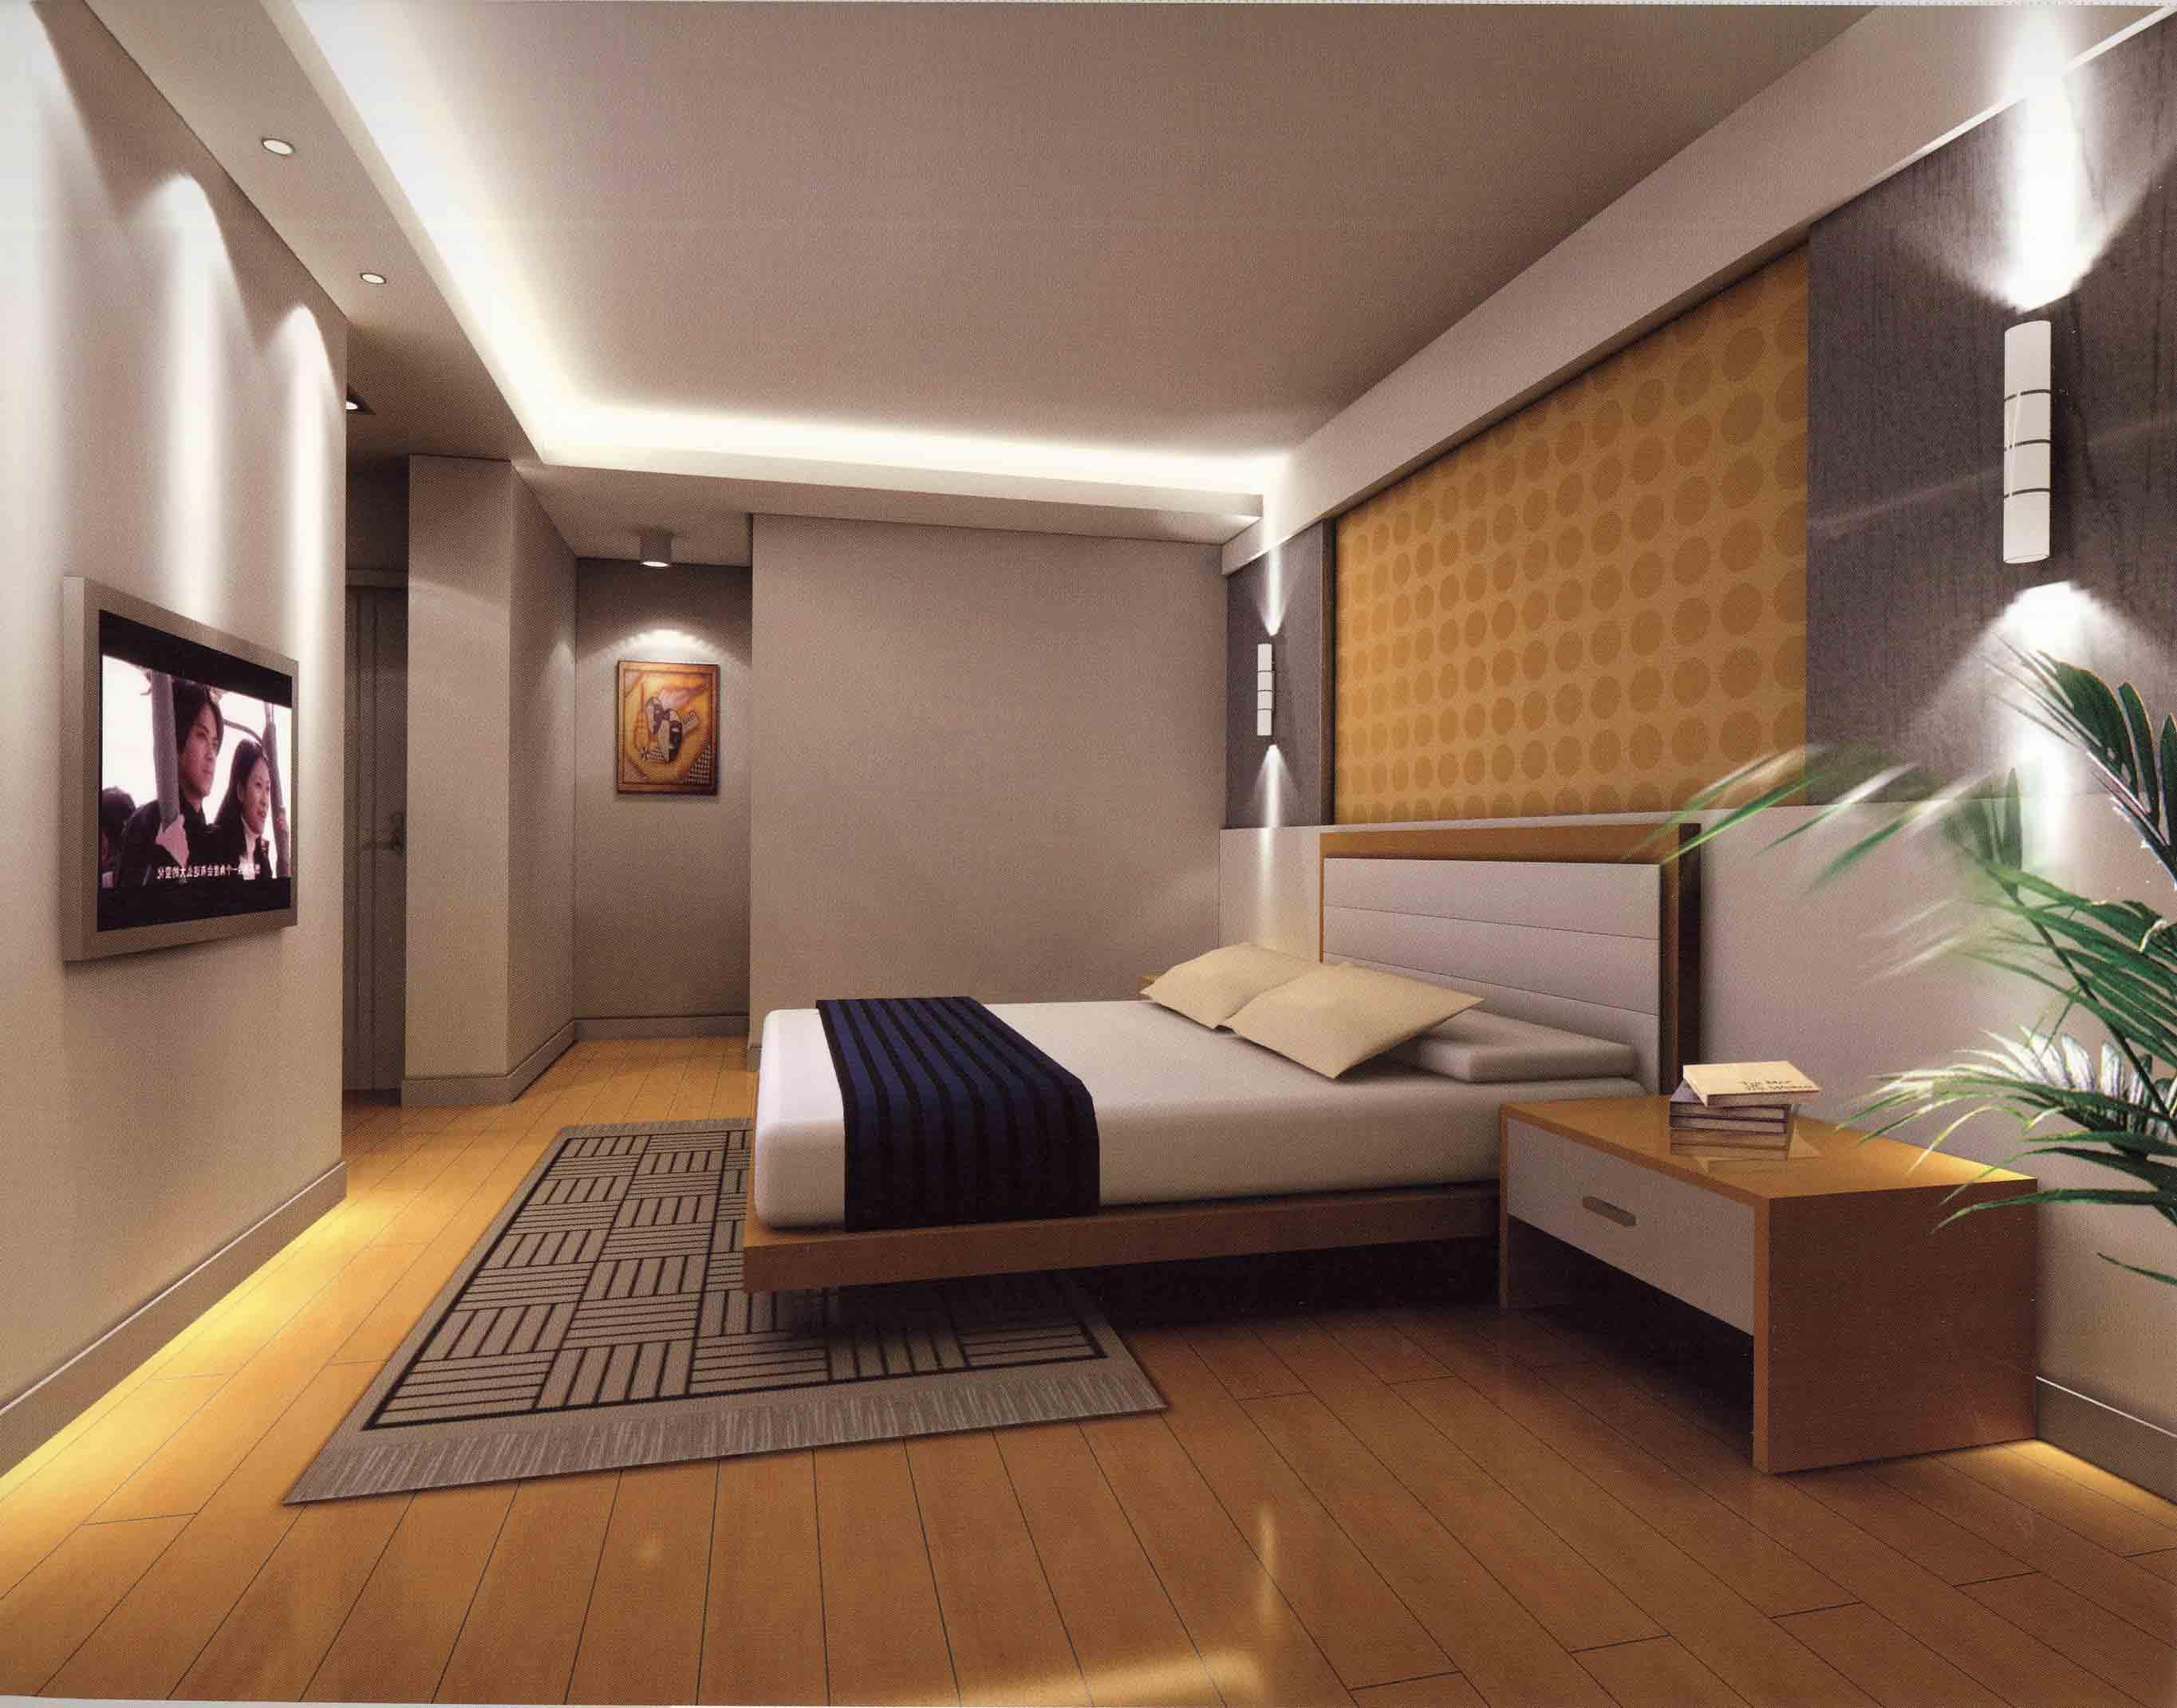 Bedroom Design Gallery For Inspiration on Room Ideas  id=83719